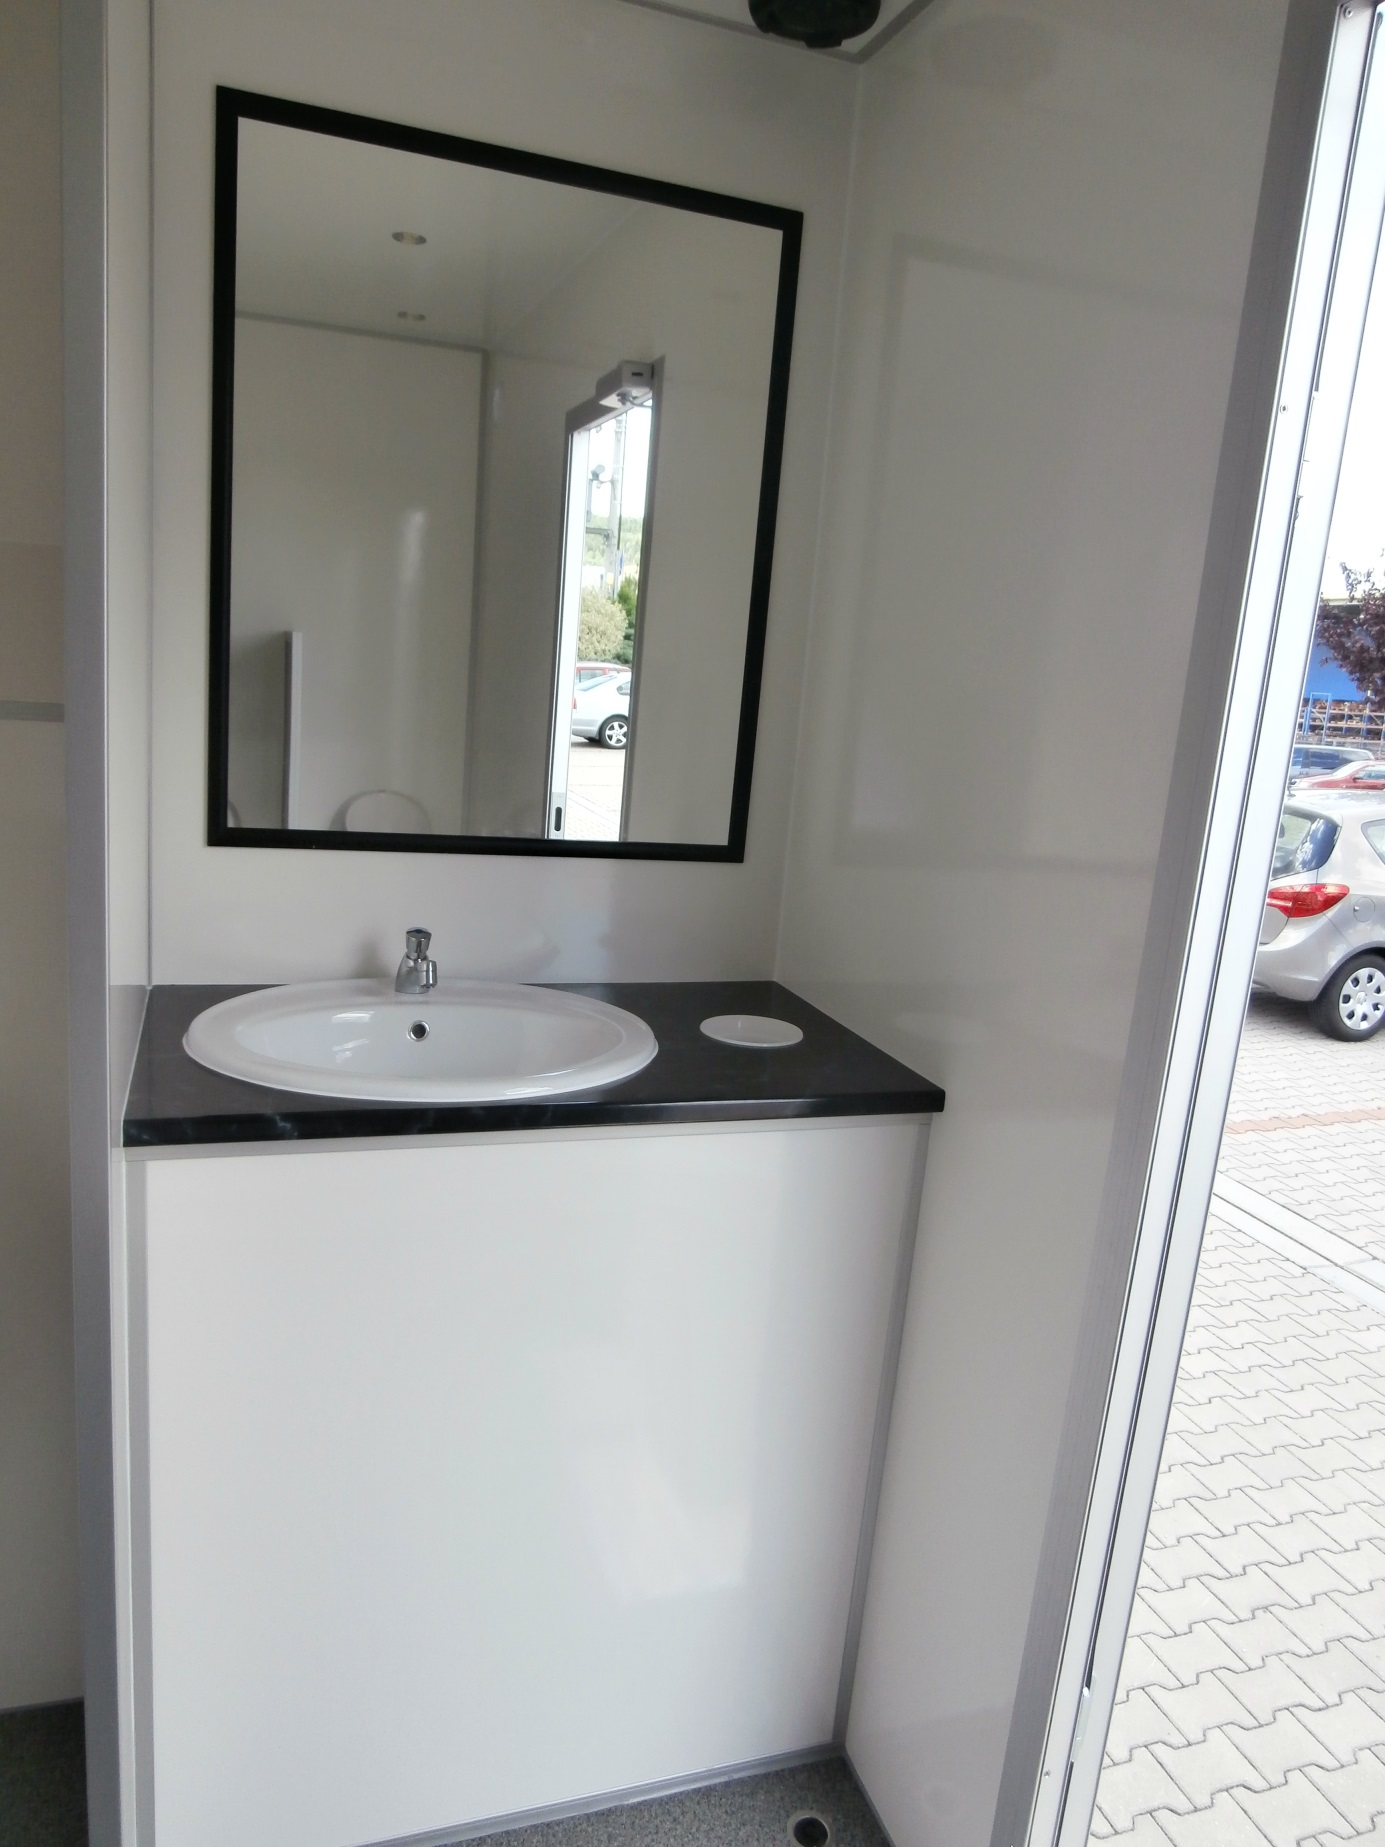 Type Vip Wc 3 1 5 61 Toilet Trailers Eurowagon